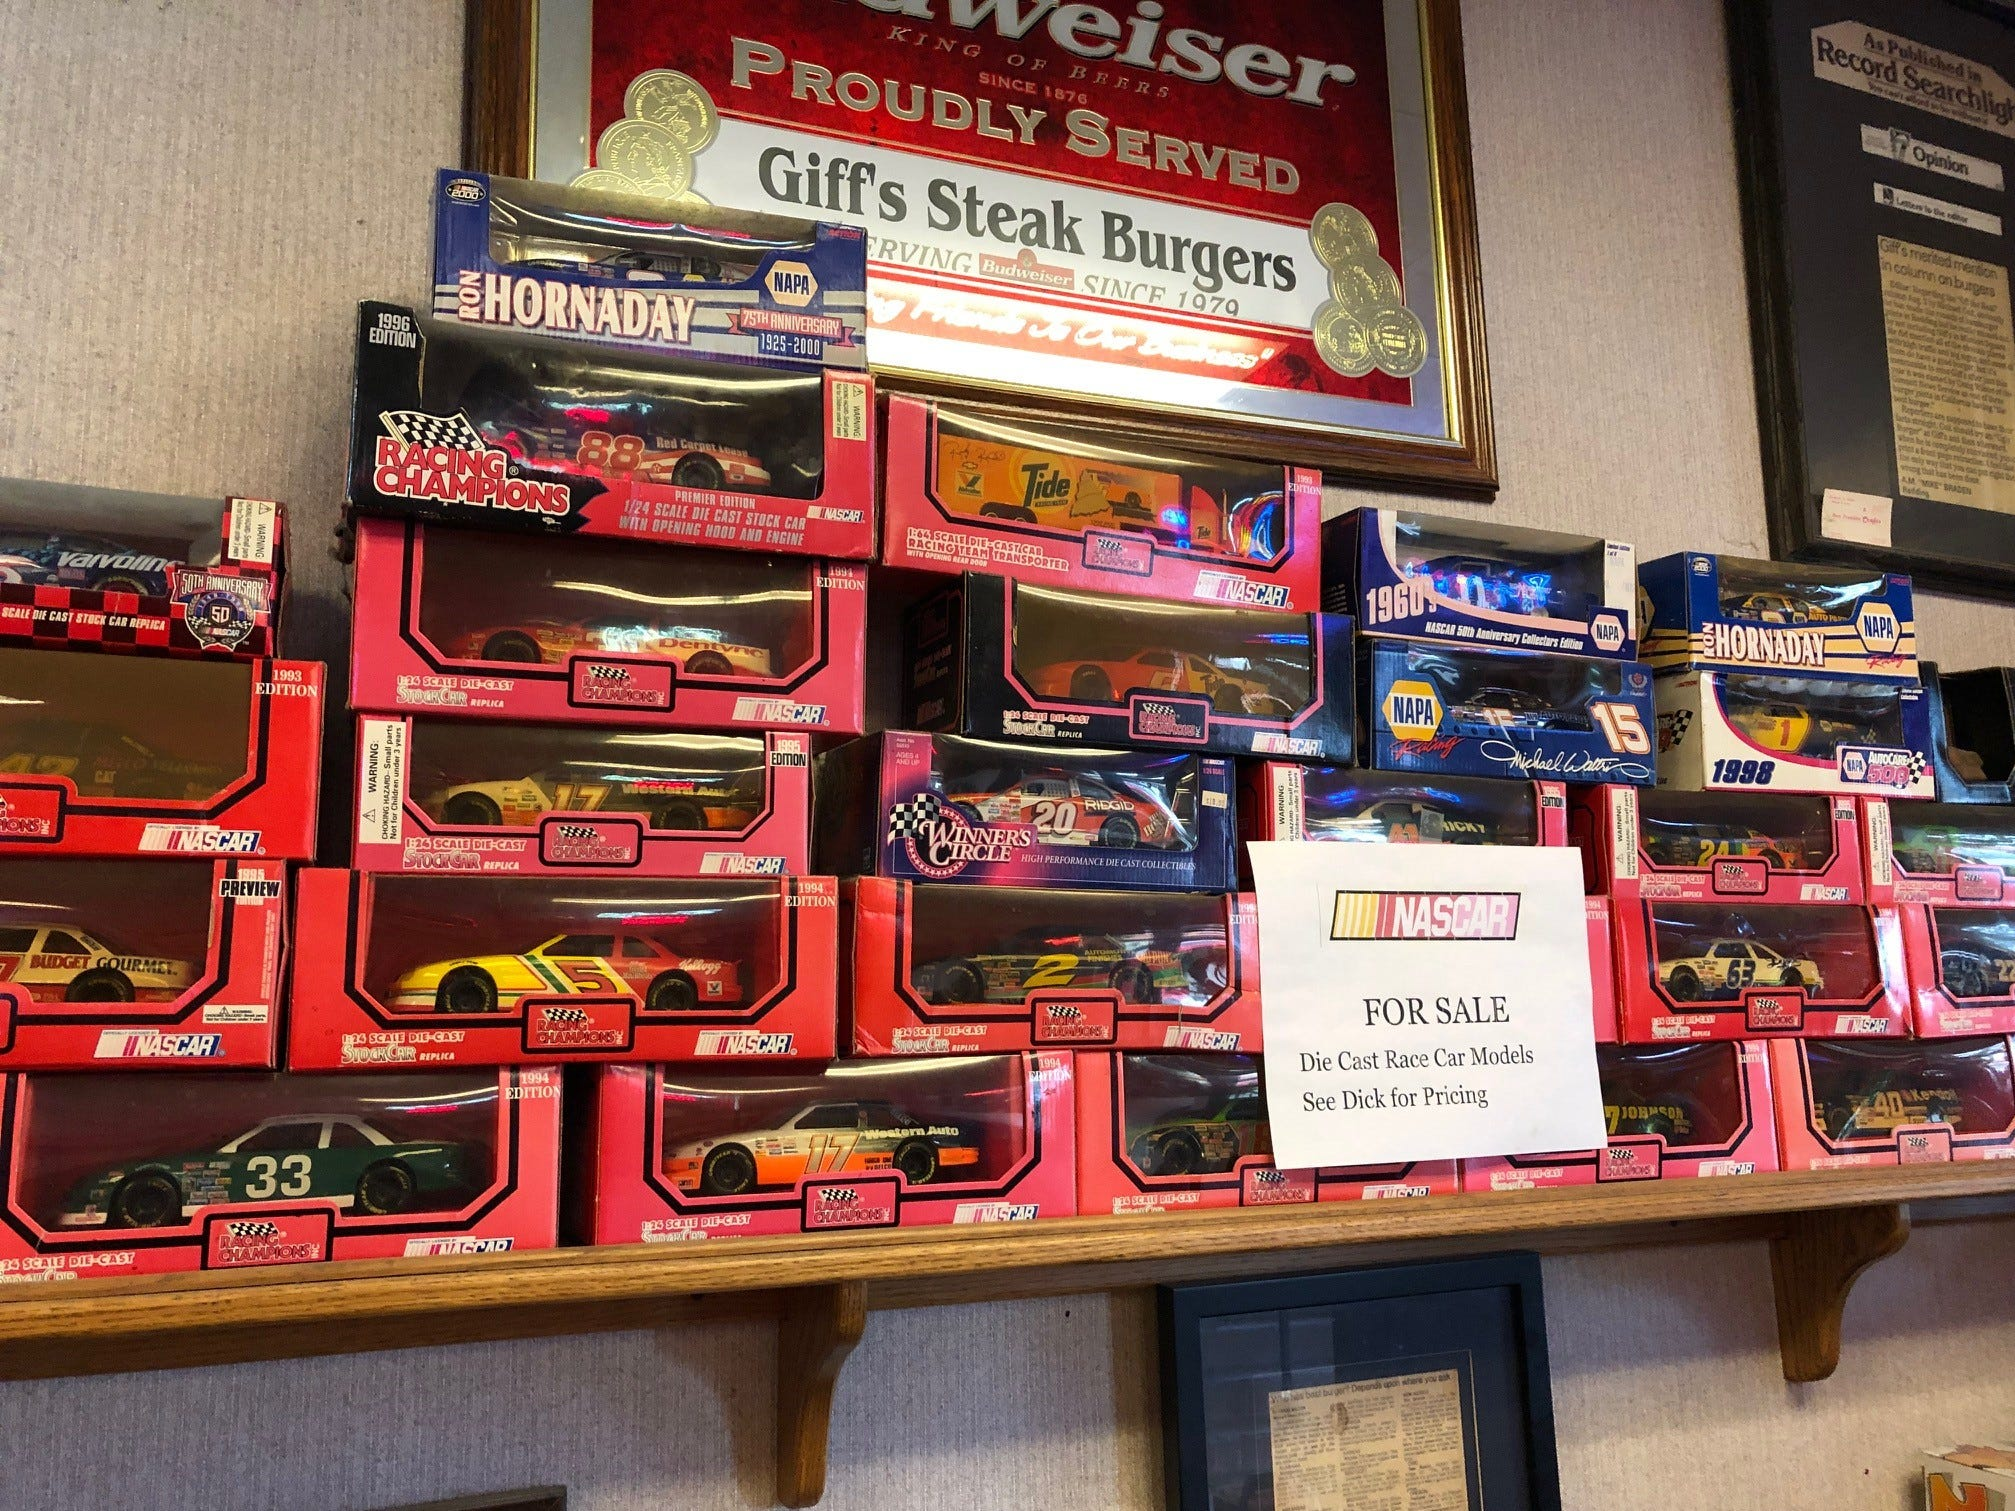 Part of the decor at Giff's Steakburger— model race cars.